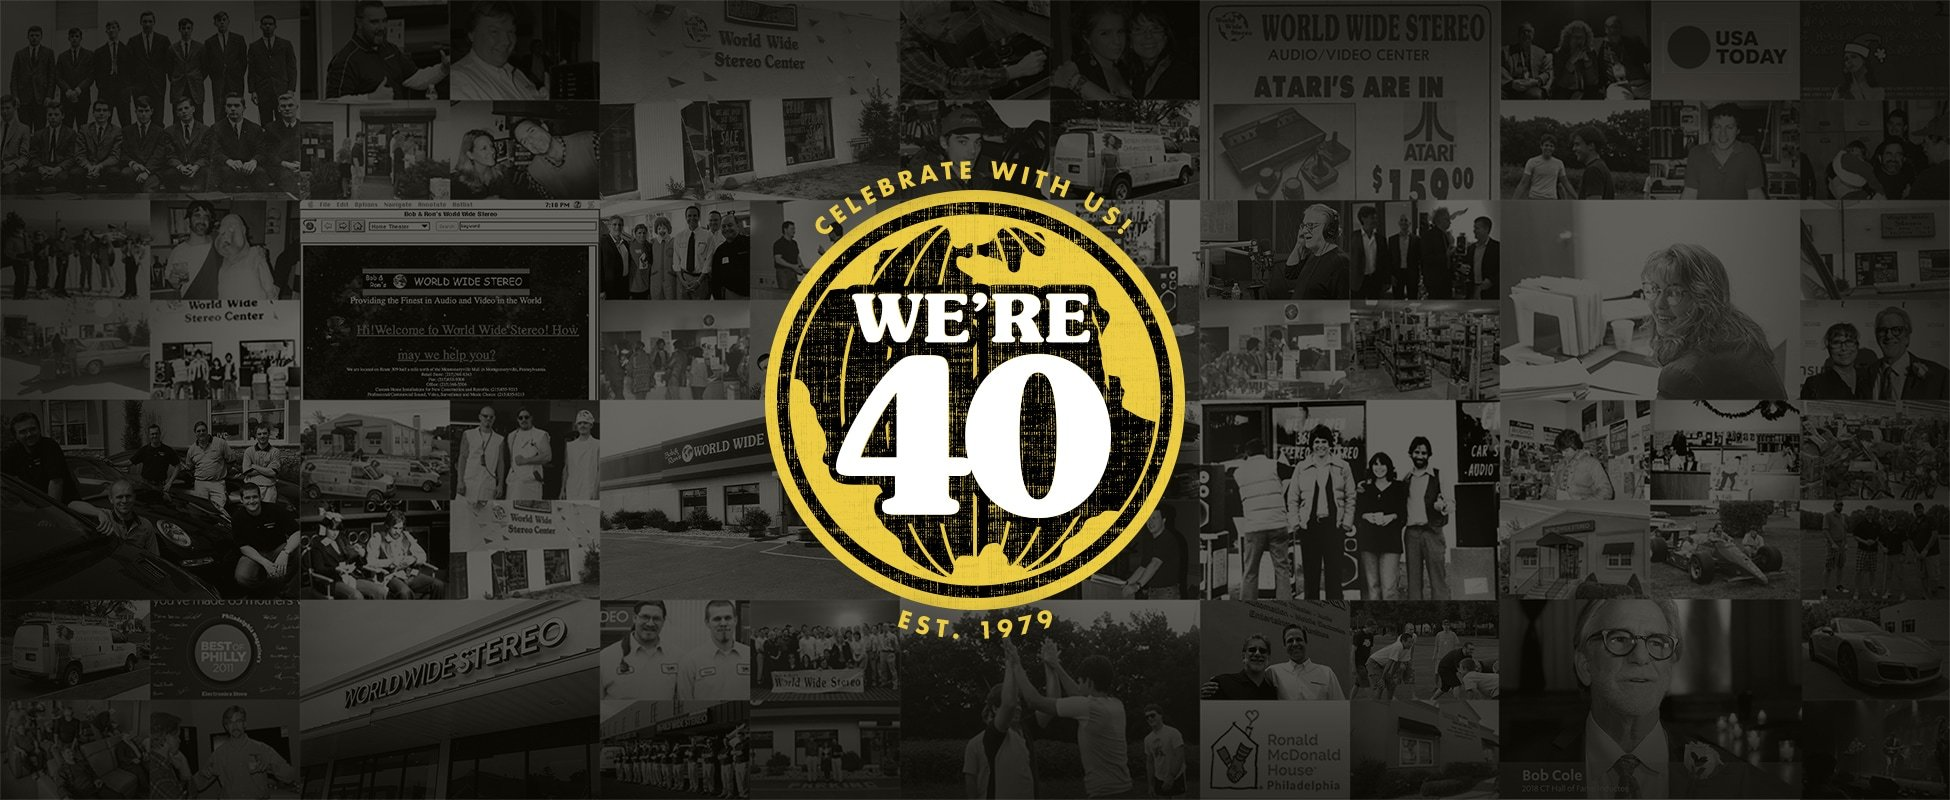 Events, Sales, Special Promotions Mark 40th Anniversary of Montgomeryville's World Wide Stereo